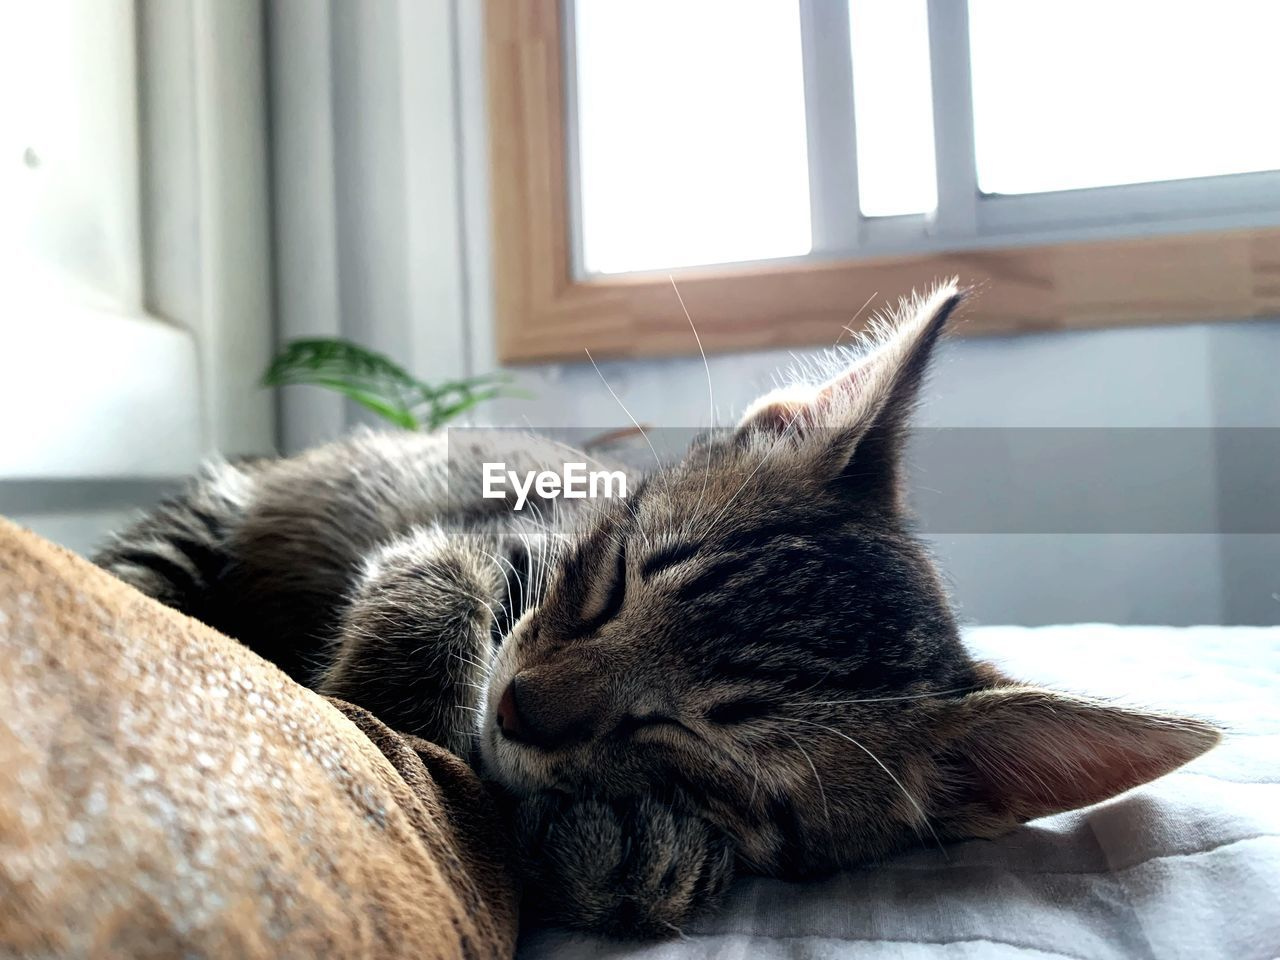 domestic, pets, domestic animals, mammal, domestic cat, cat, one animal, feline, relaxation, animal, animal themes, vertebrate, sleeping, resting, indoors, eyes closed, lying down, no people, home interior, focus on foreground, whisker, napping